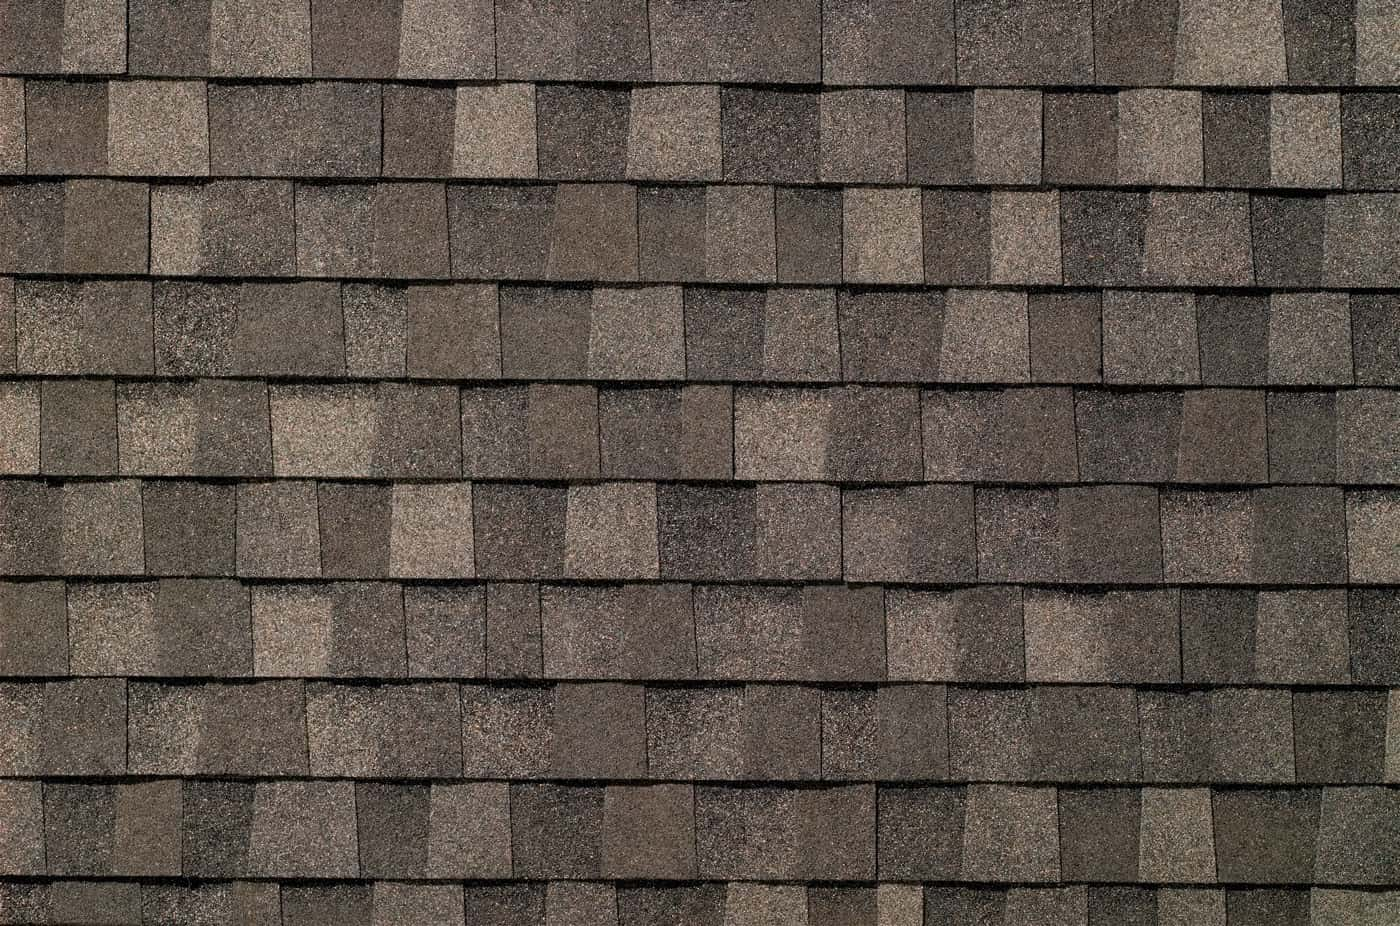 TAMKO Heritage Premium Weathered Wood Swatch